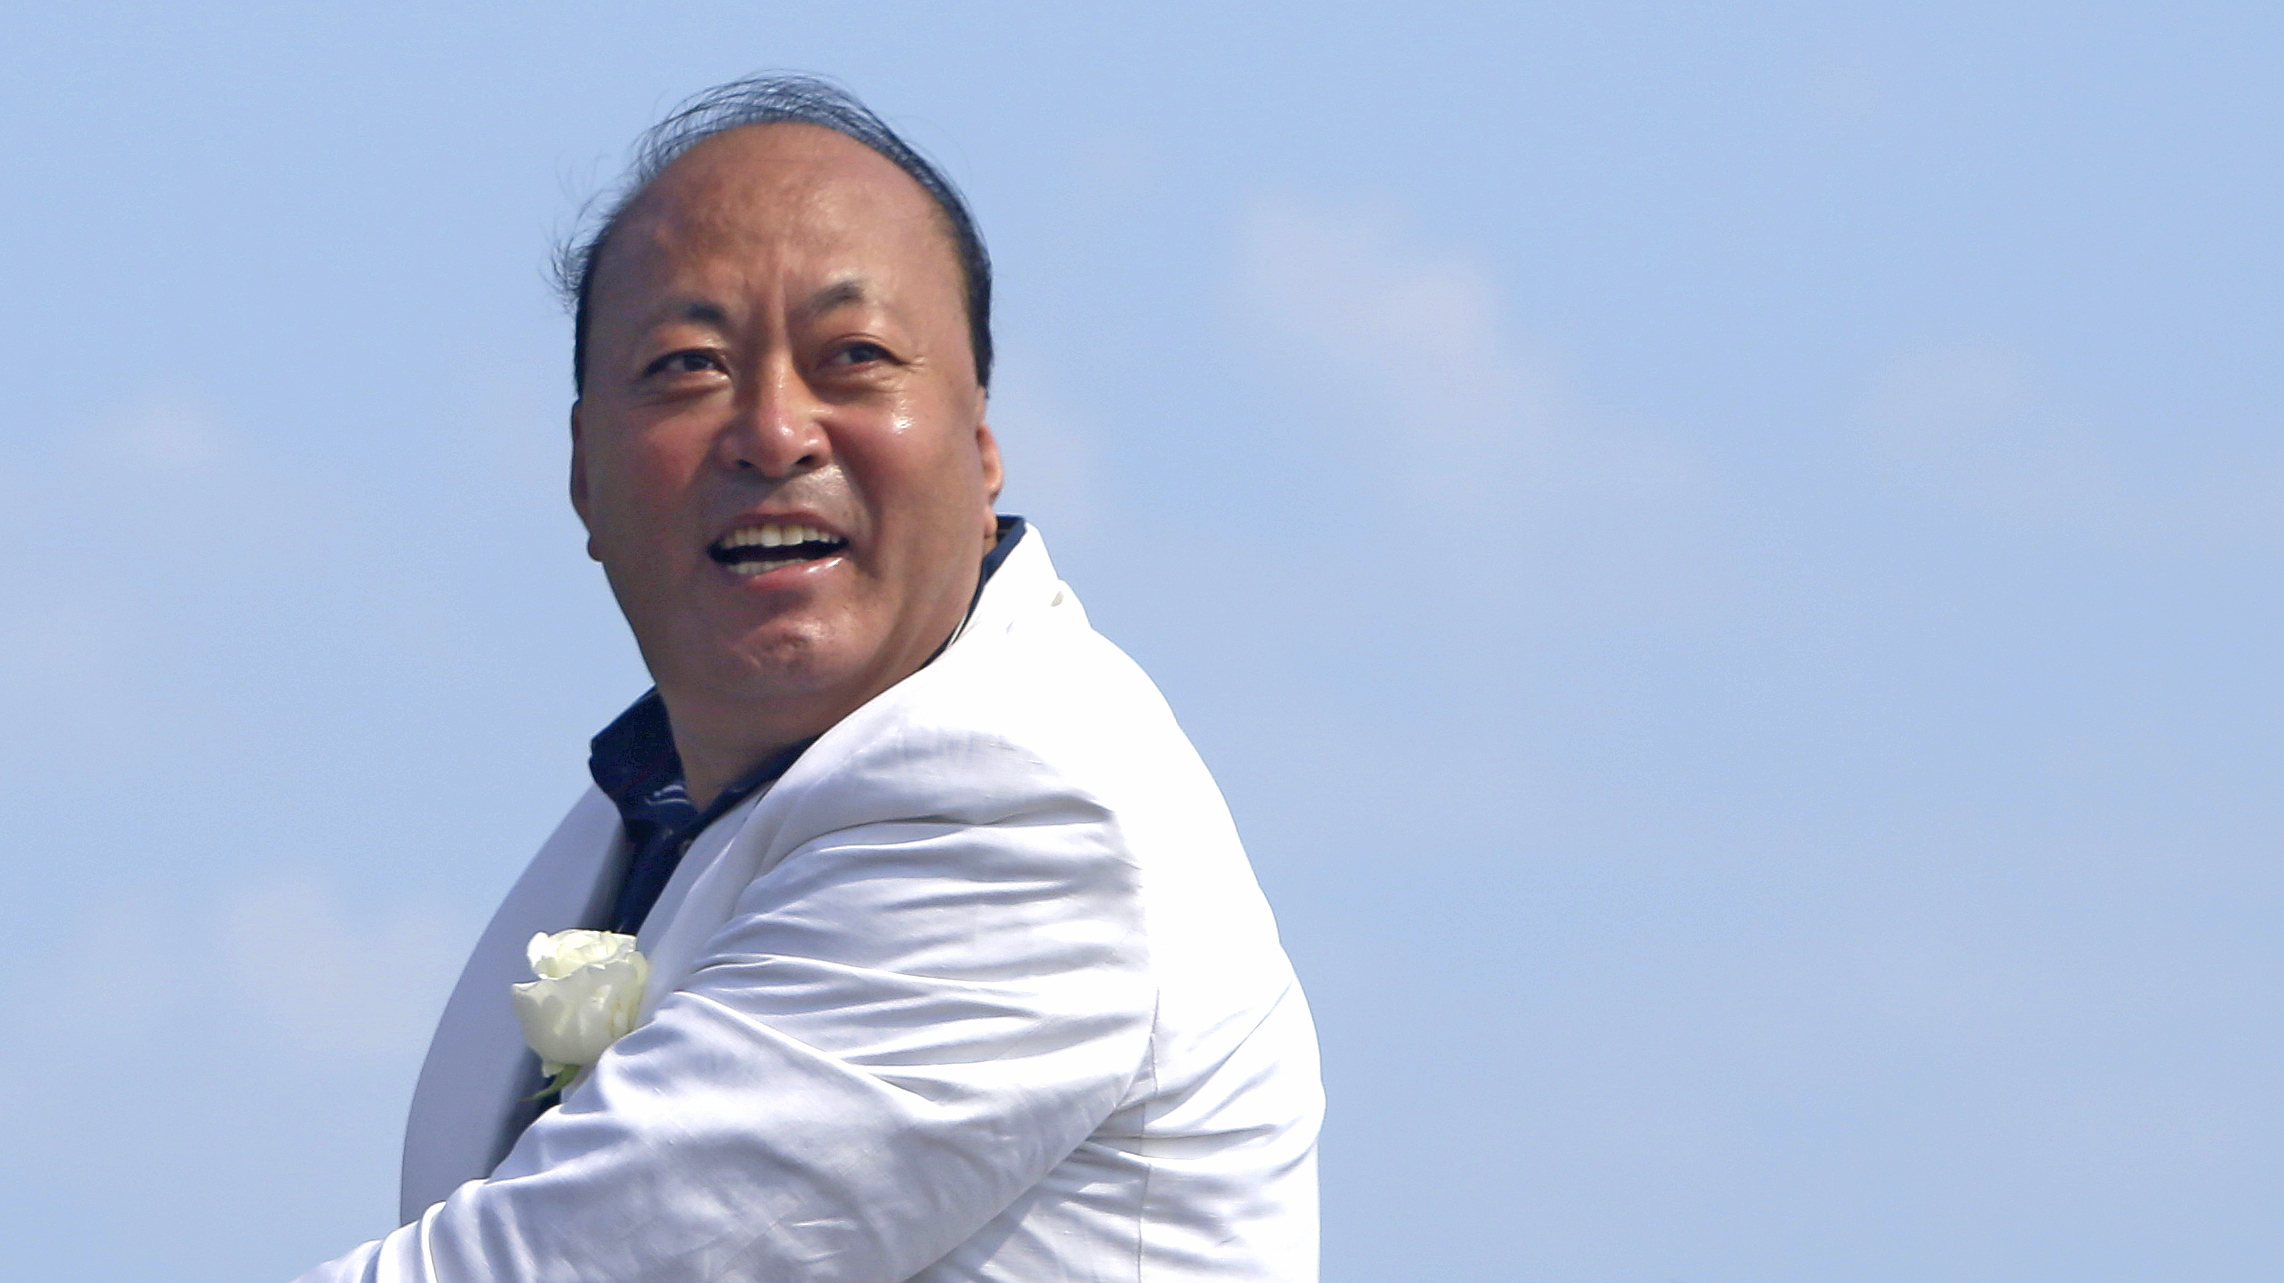 Tiens Group CEO Li Jinyuan poses during a parade on the Promenade des Anglais in Nice, southeastern France, on May 8, 2015